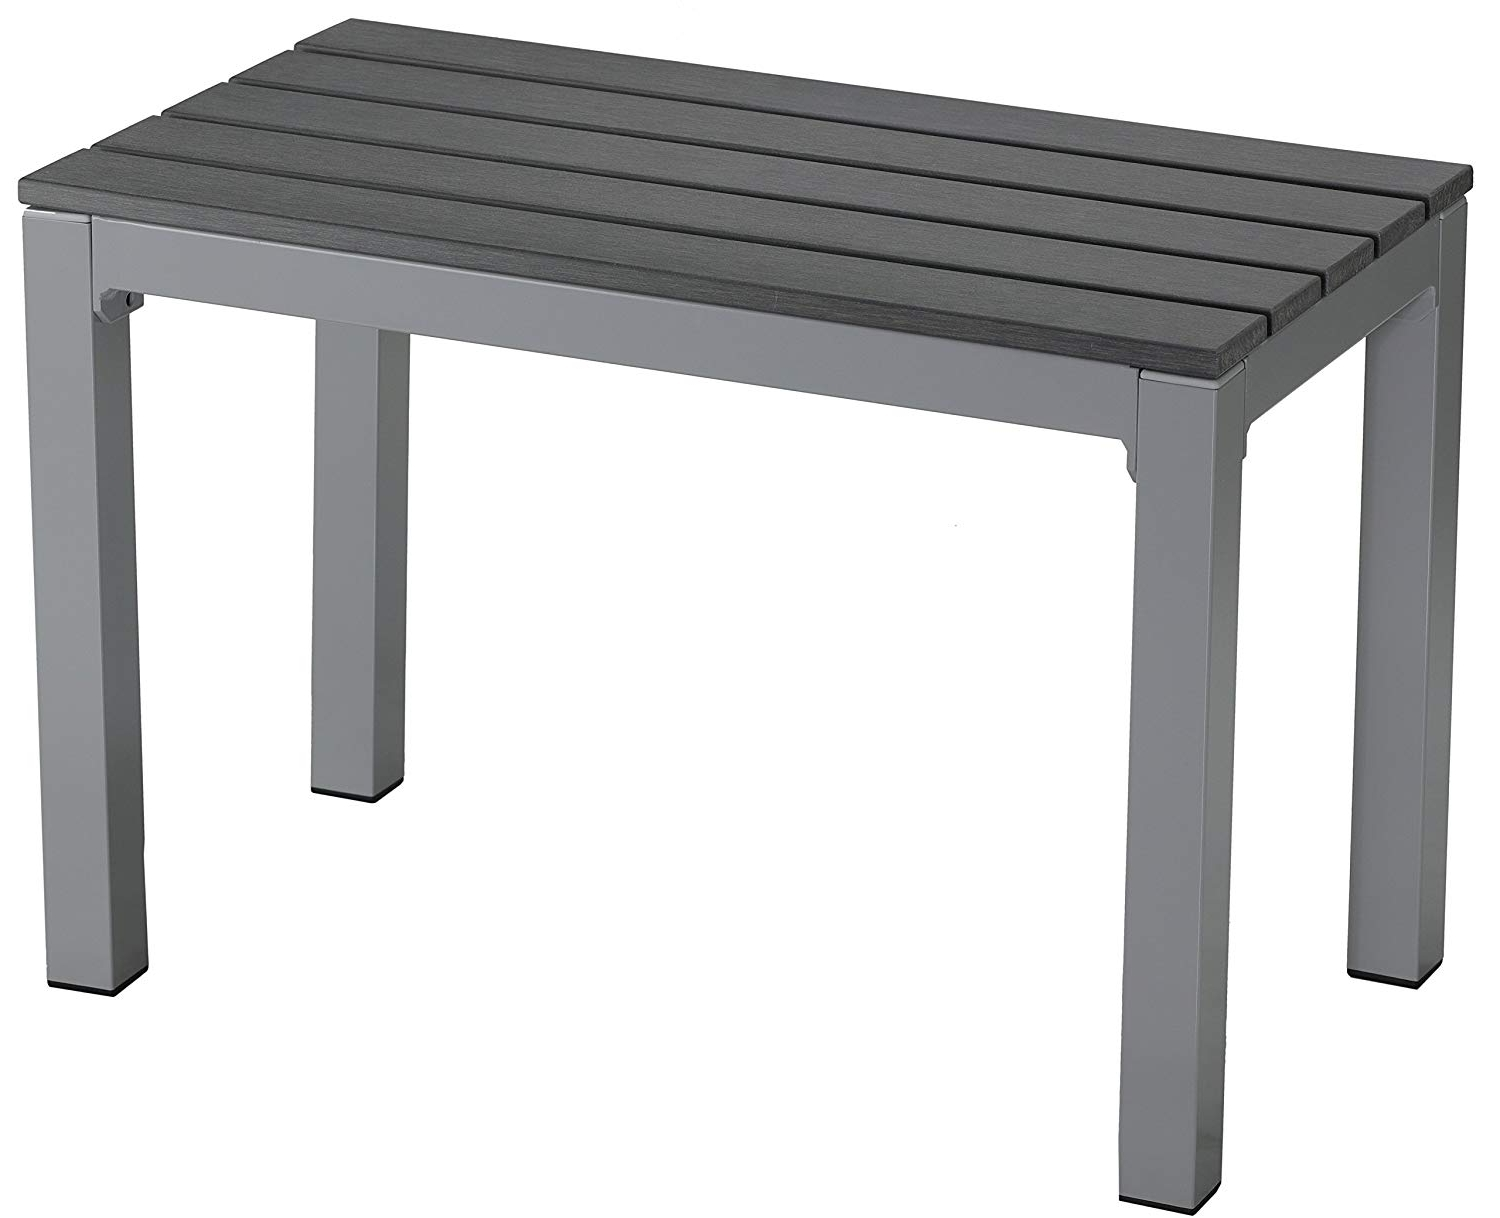 Most Recent Amazon : Cortesi Home Jaxon Aluminum Outdoor Picnic Bench For Jaxon 6 Piece Rectangle Dining Sets With Bench & Uph Chairs (Gallery 10 of 25)